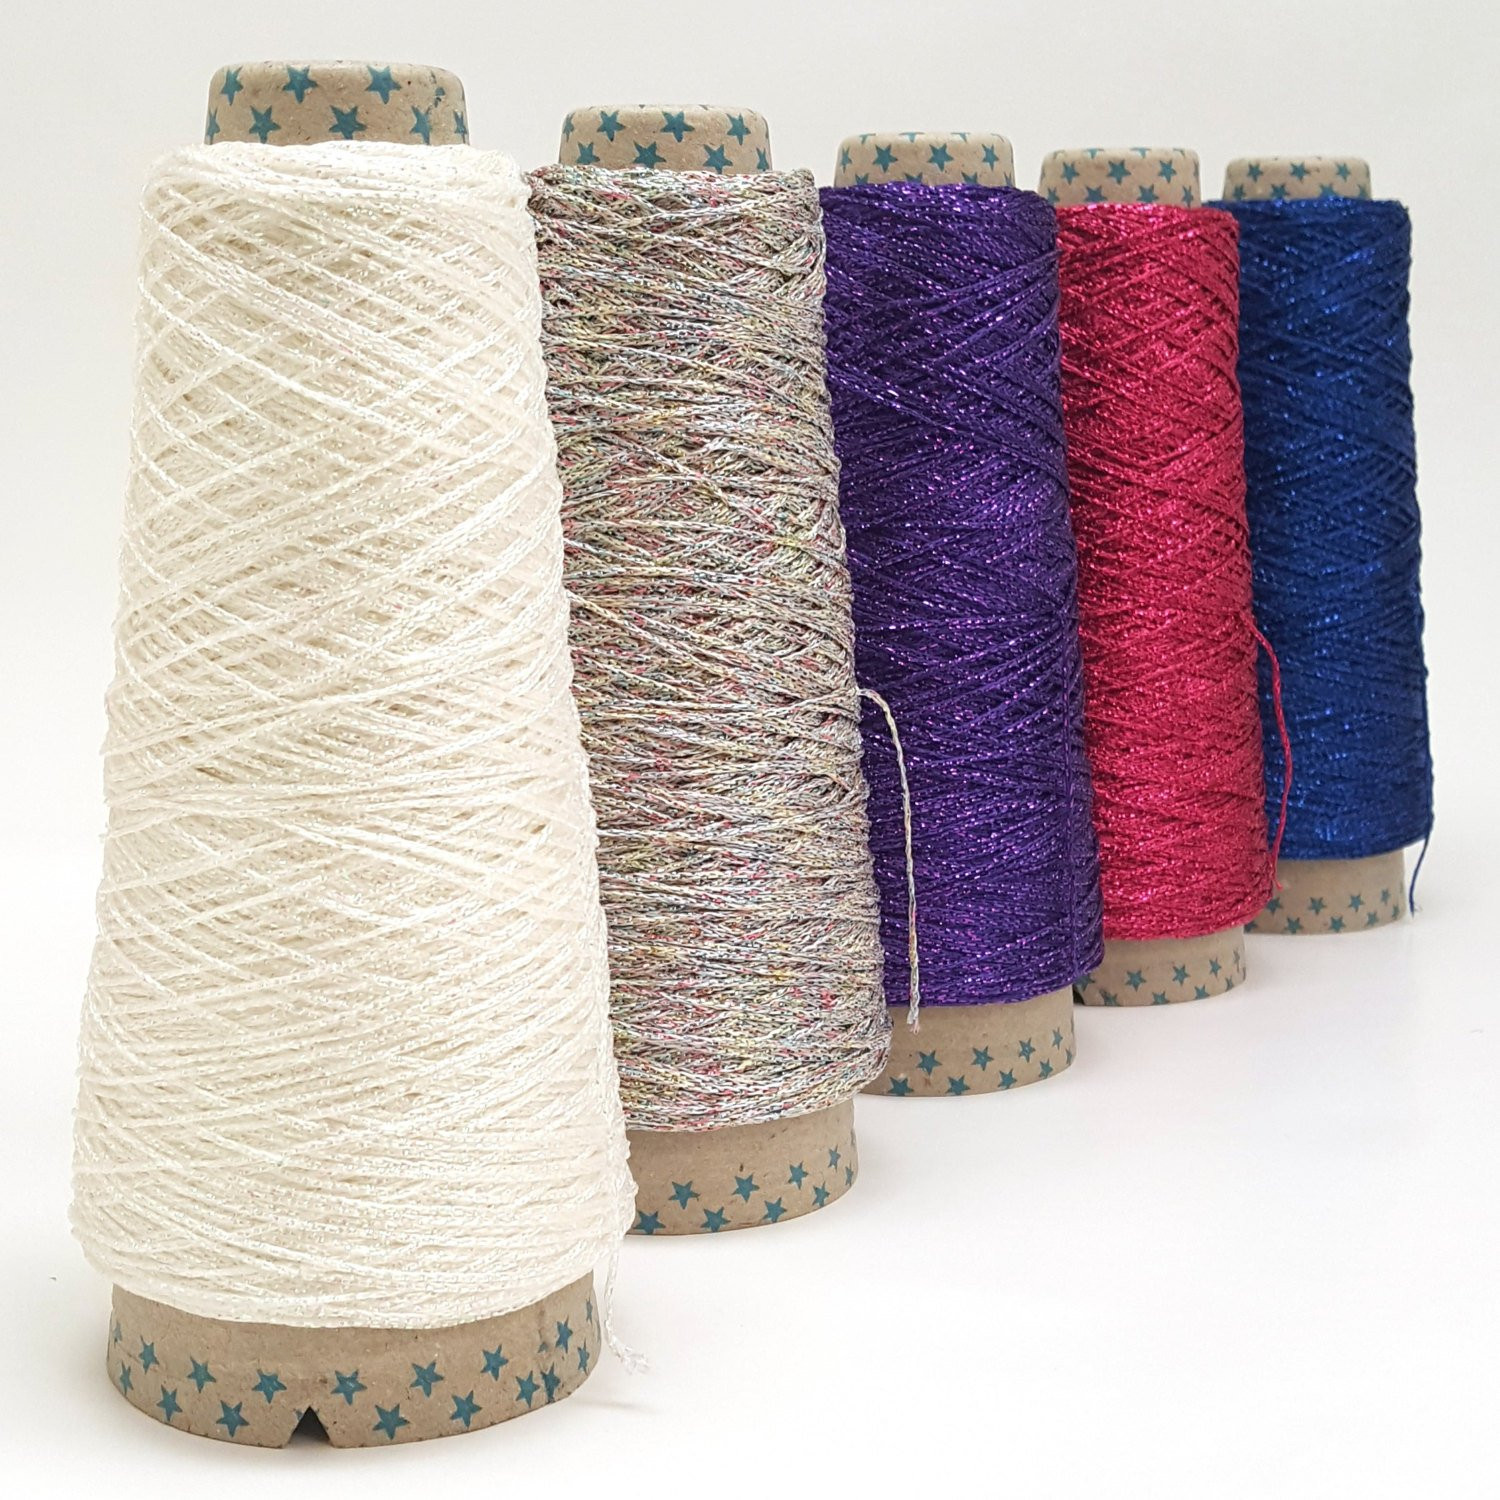 Yarn with Metallic Thread Beautiful Metallic 4ply Glitter Chainette Yarn Metallic Glitter Thread Of Lovely 44 Pics Yarn with Metallic Thread